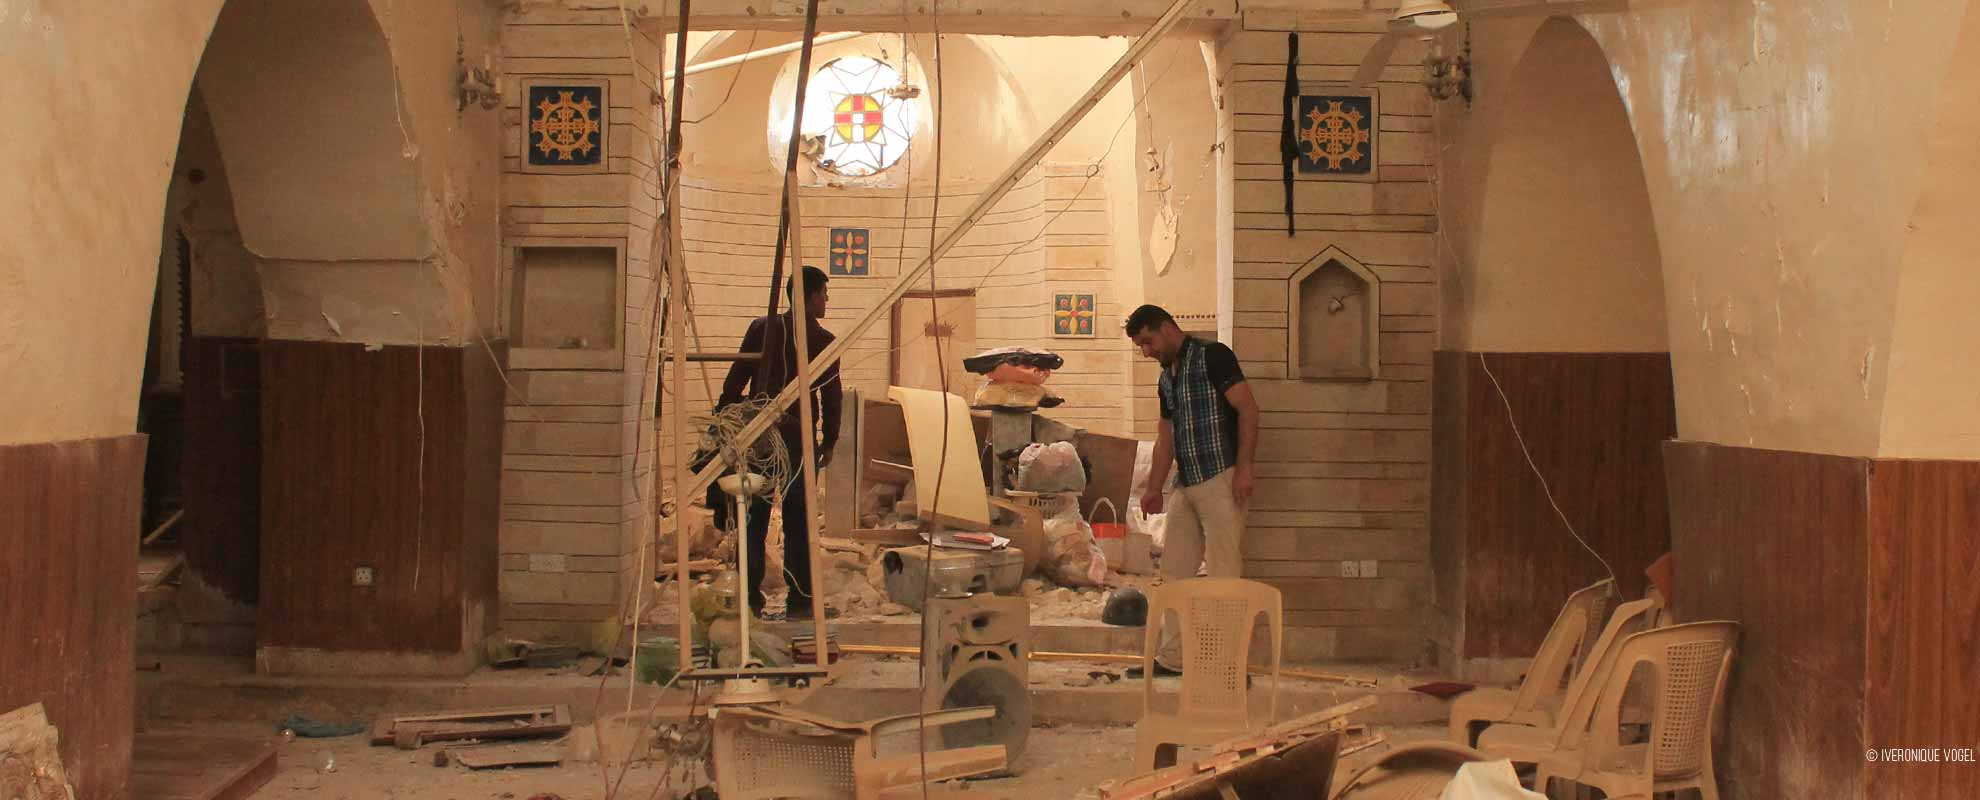 The rebuilding begins on the Plains of Nineveh